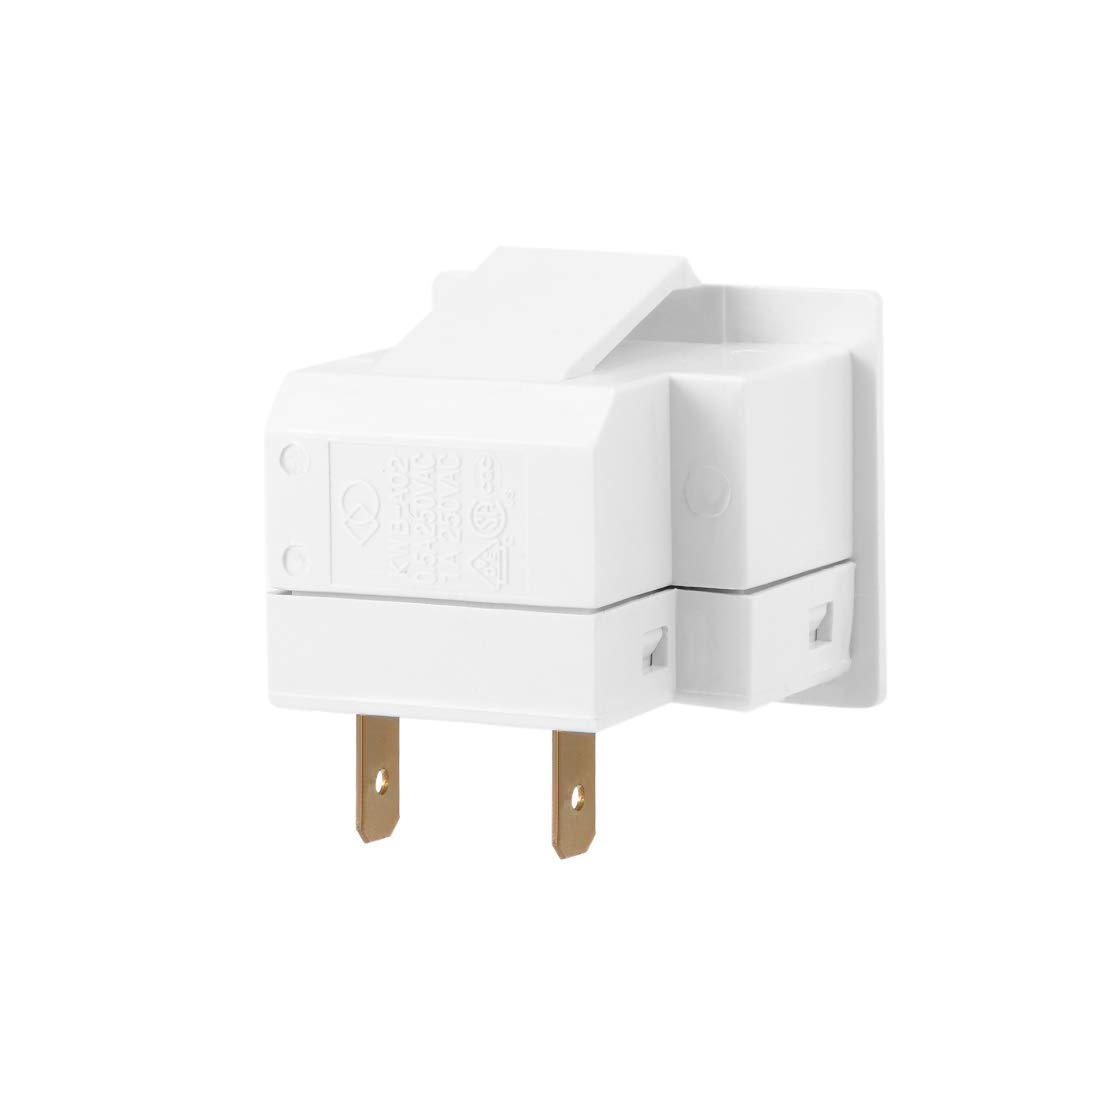 uxcell Refrigerator Door Light Switch Momentary Fridge Switch Normally Closed 250V 0.5A for GE Whirlpool LG Maytag Admiral Amana 2pcs